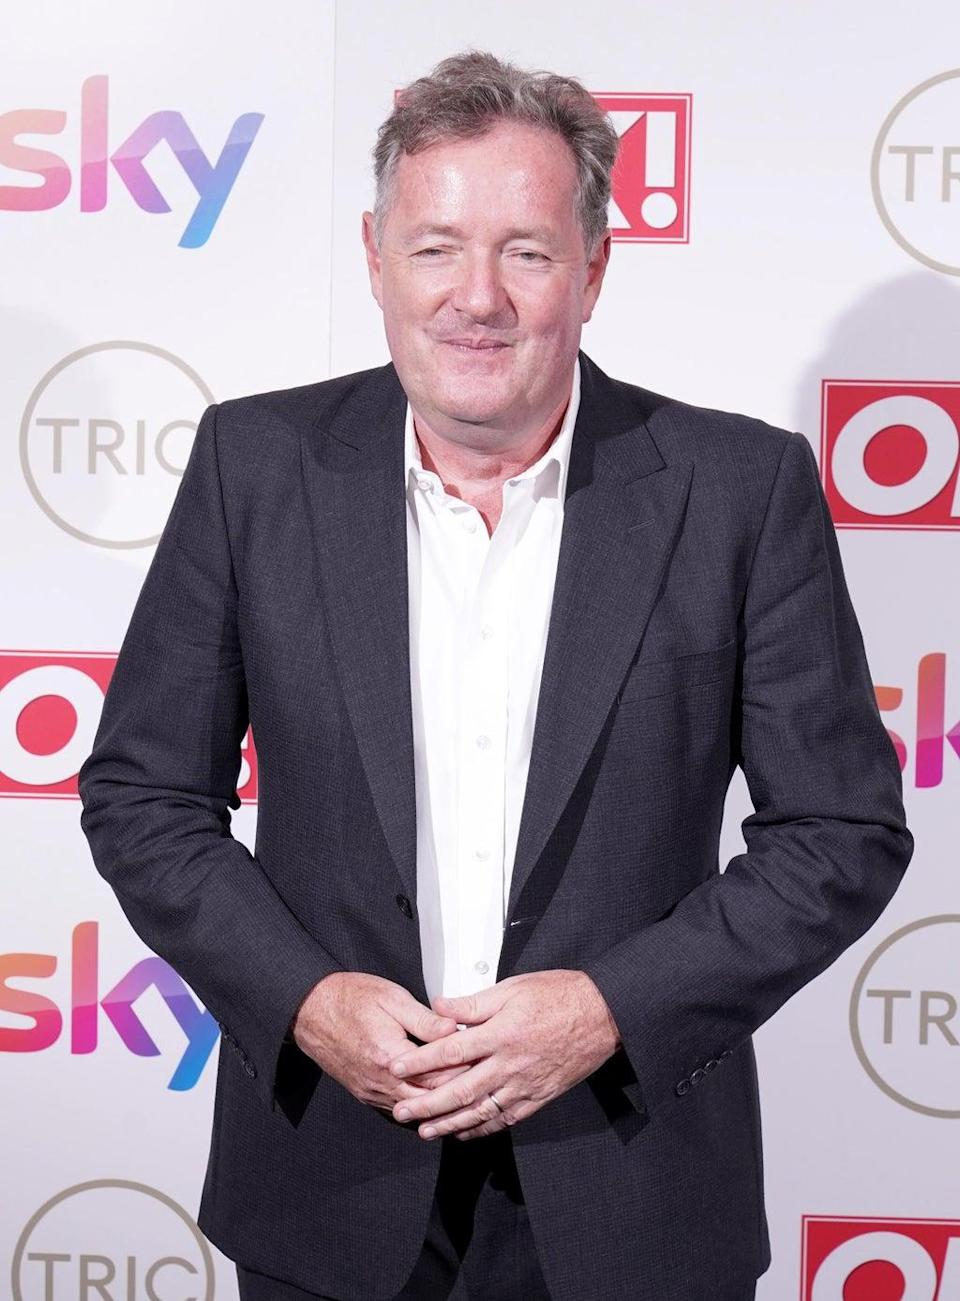 Piers Morgan will host a new TV show airing on weeknights in the UK, US and Australia (Ian West/PA) (PA Wire)